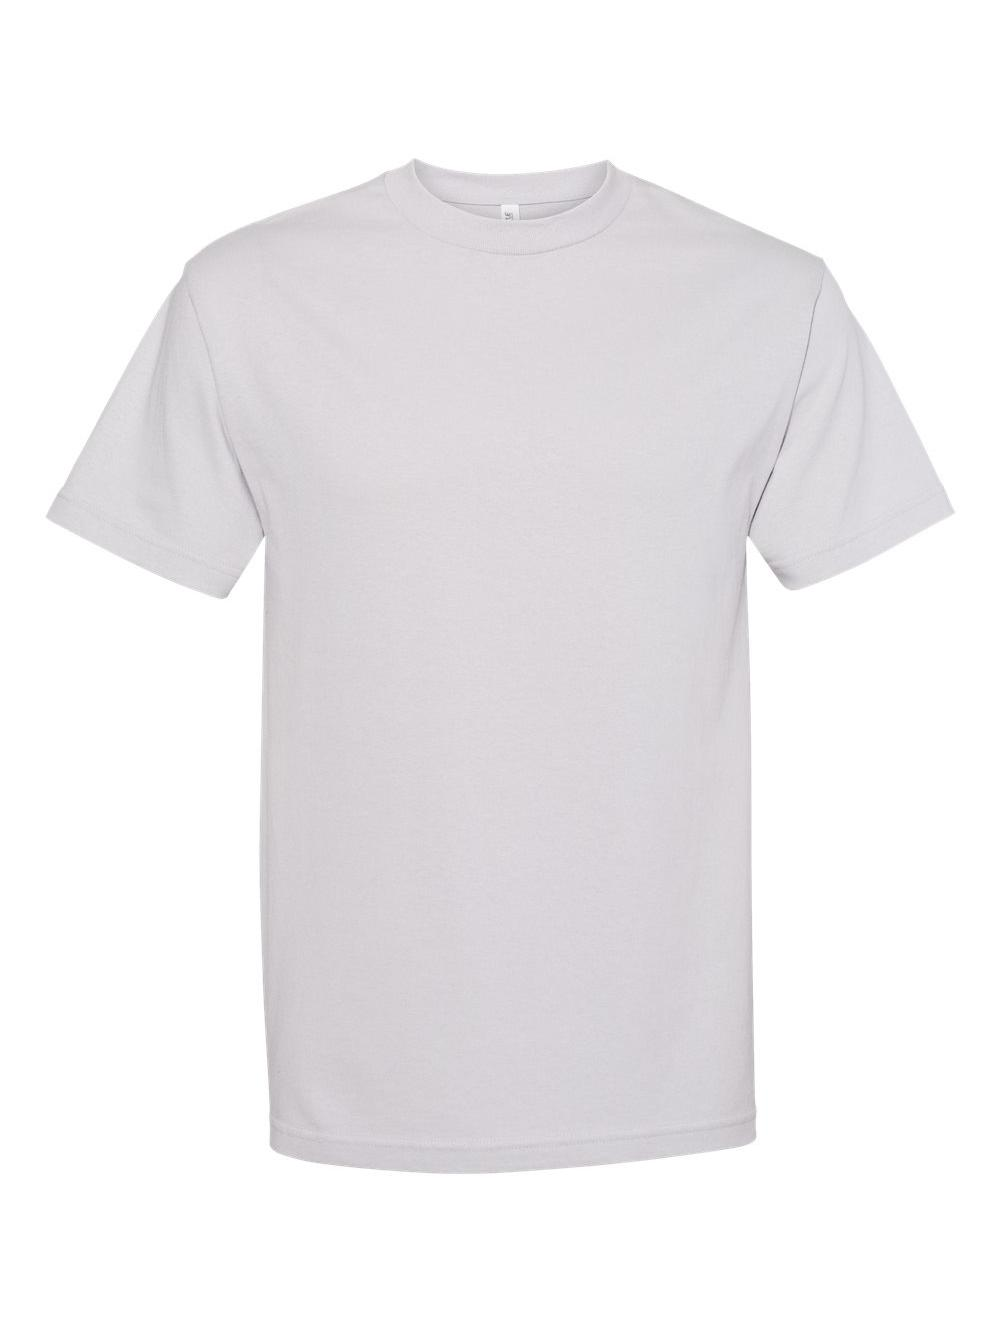 ALSTYLE-Classic-T-Shirt-1301 thumbnail 80